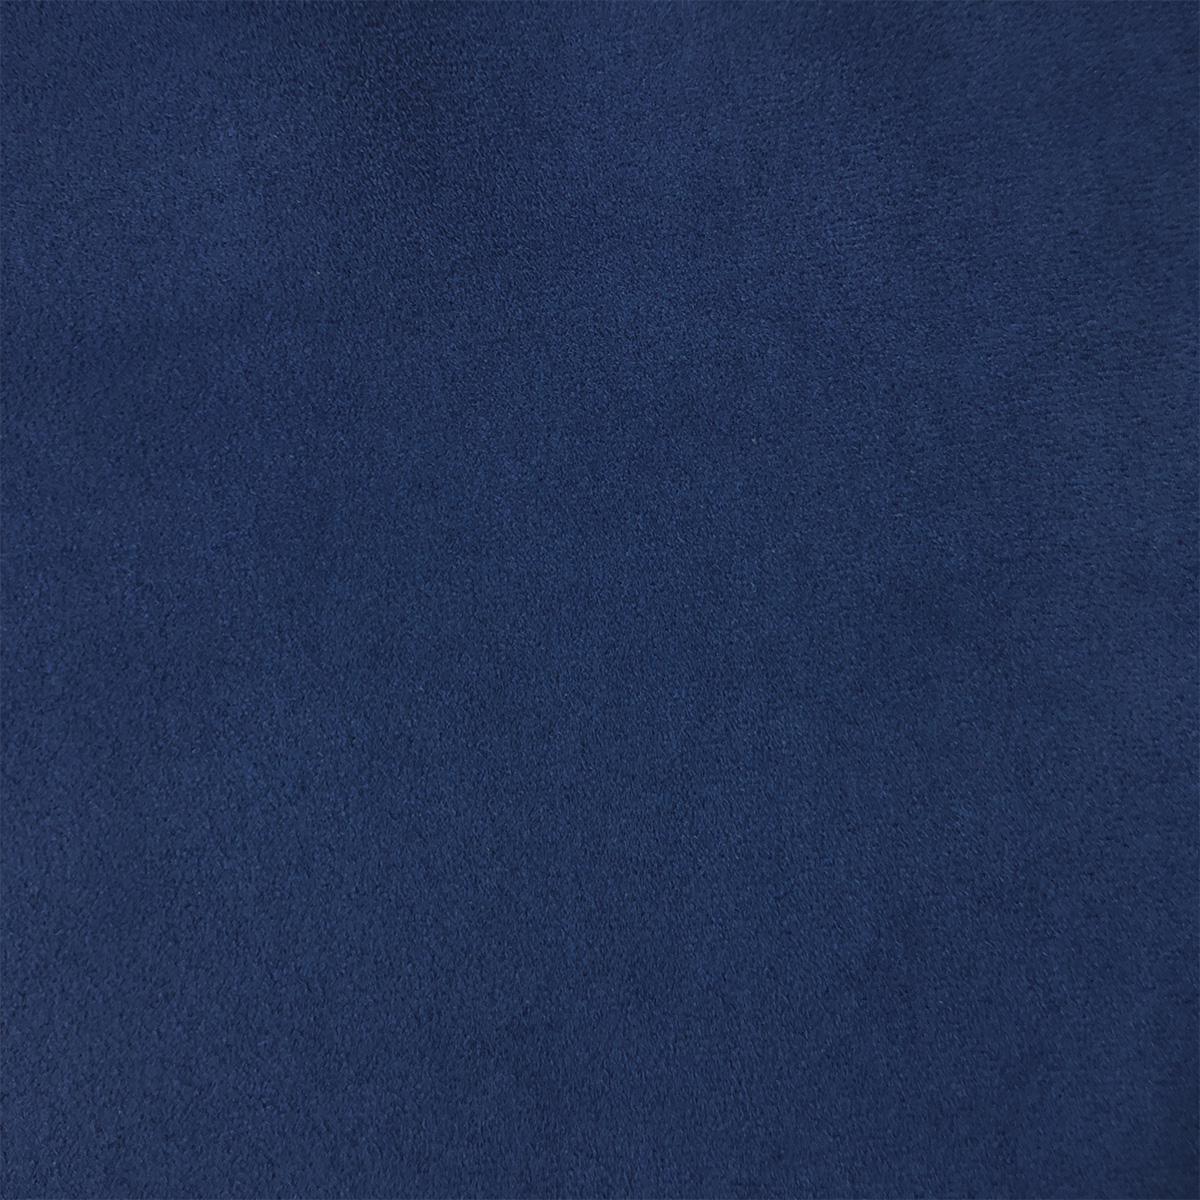 "Uni-Suede 2.75""W x 5""H x .09mm - 3 Pieces - Dark Blue"